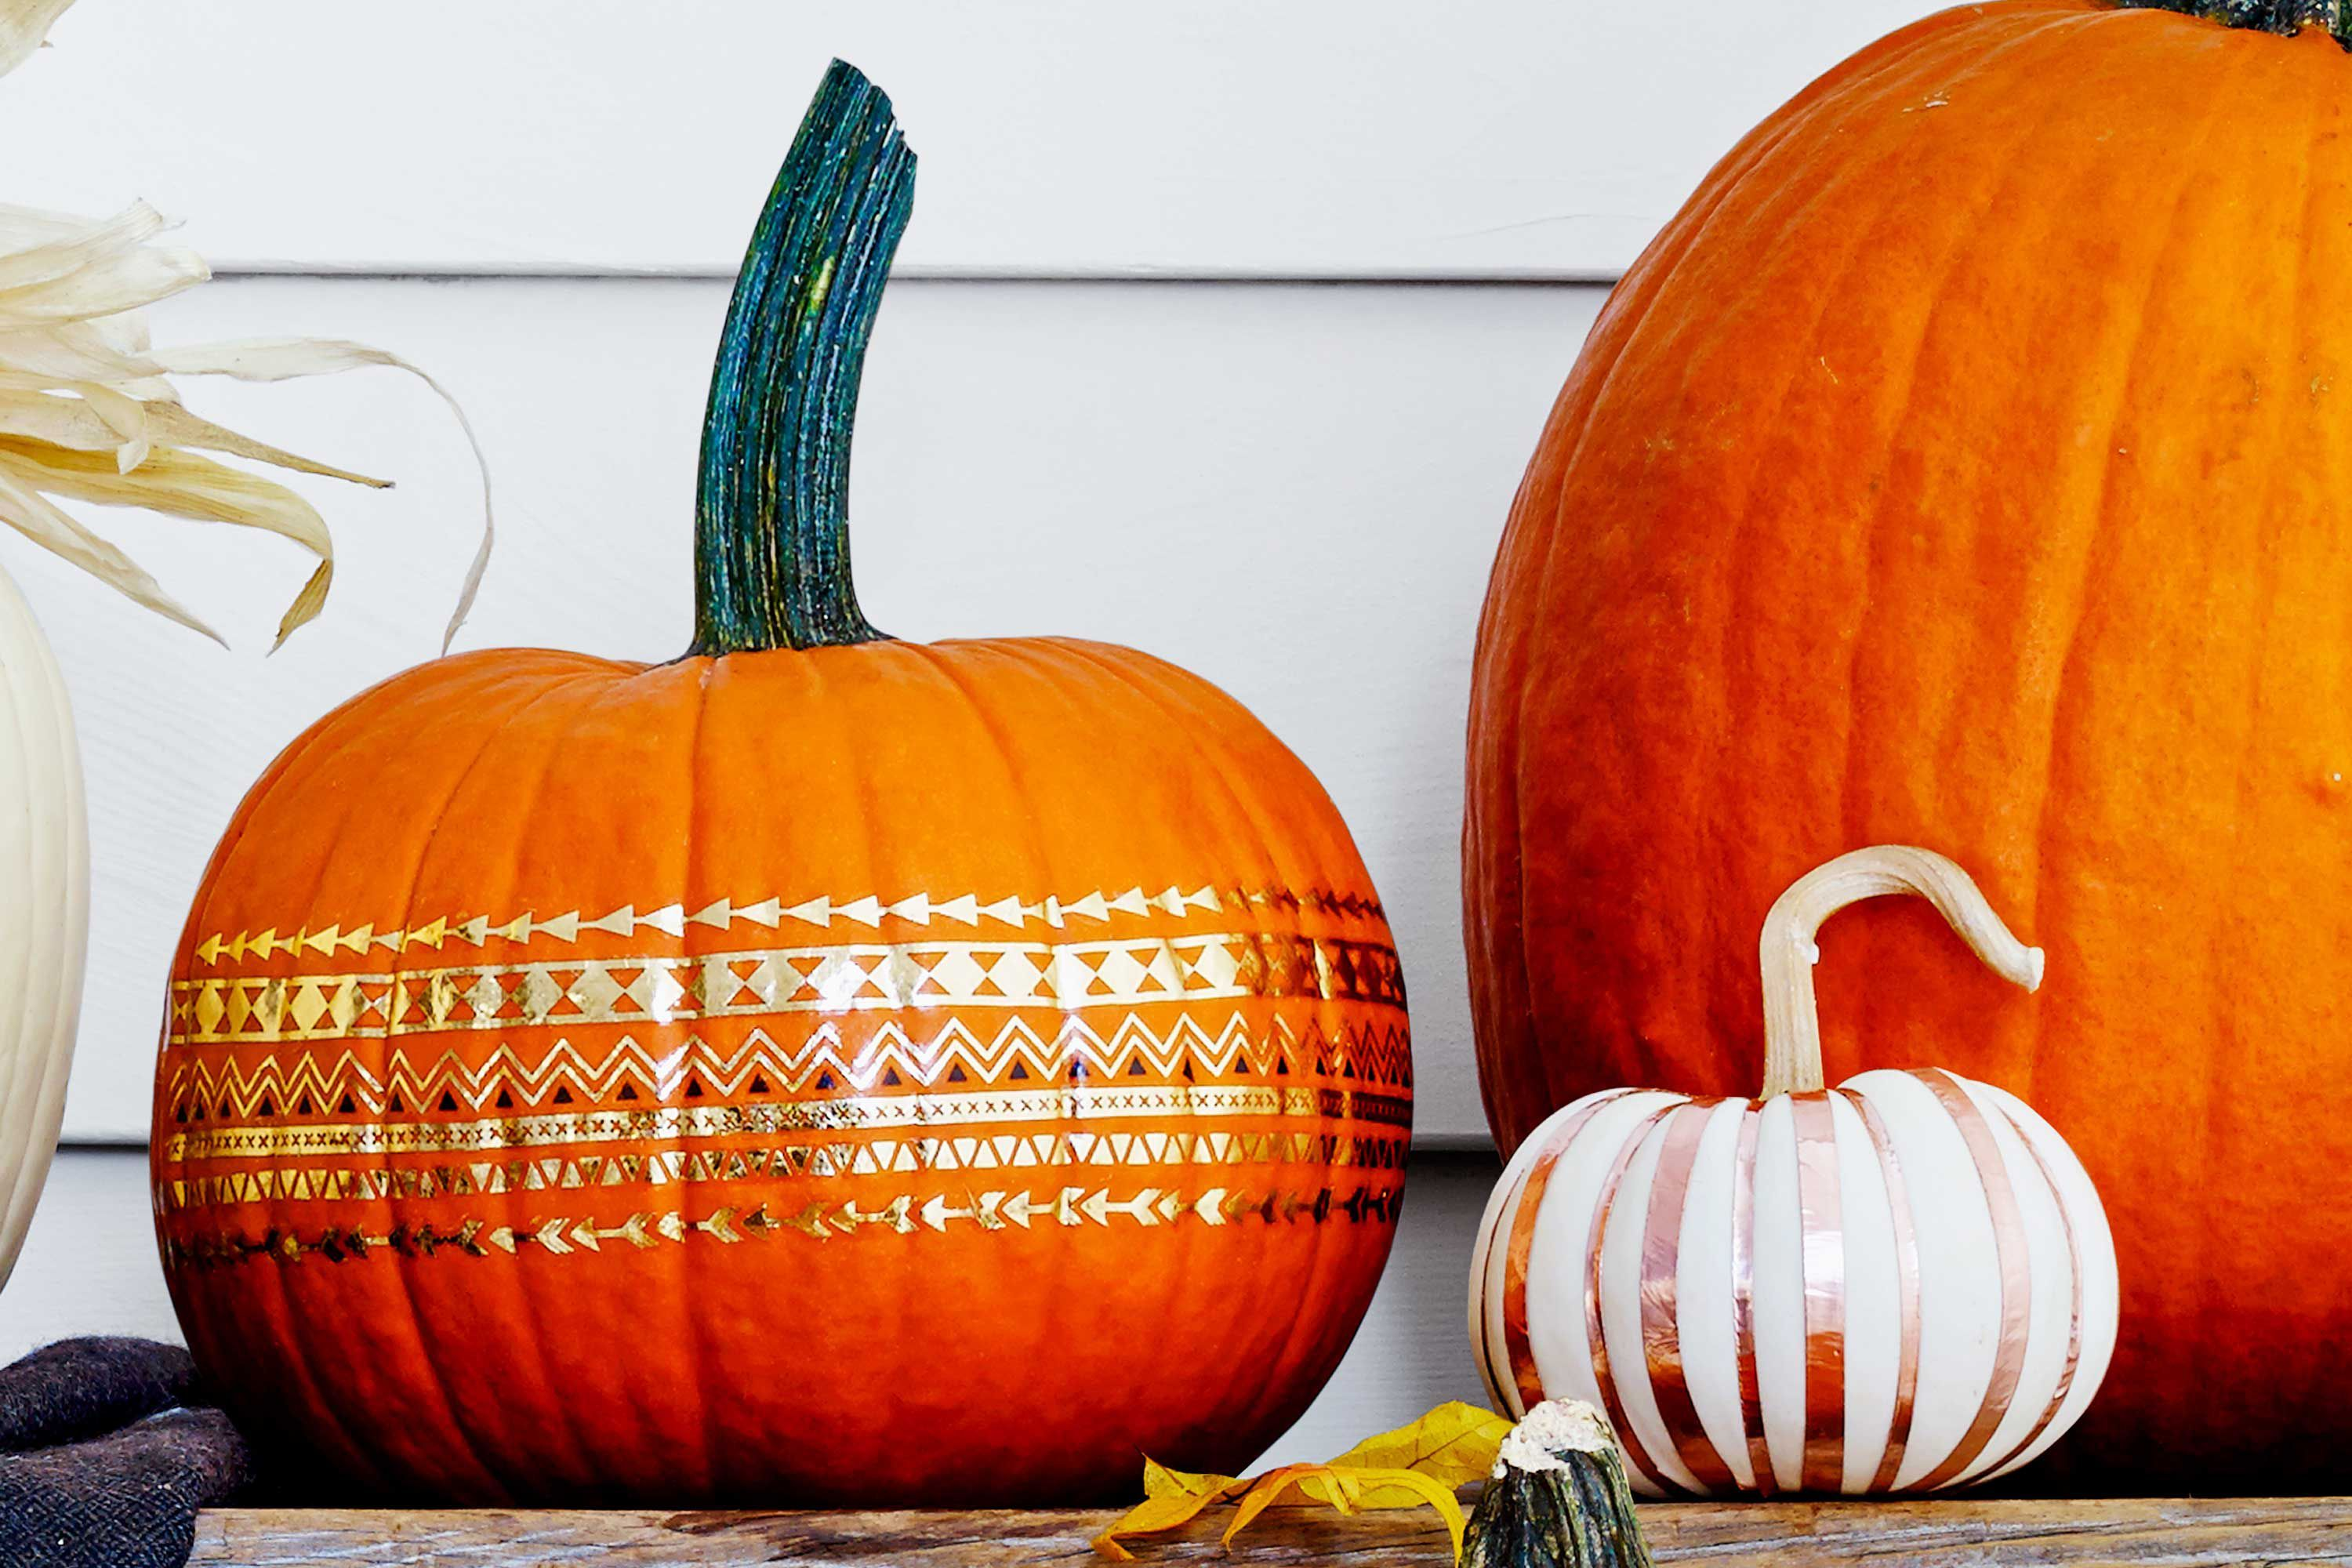 28 Best No Carve Pumpkin Decorating Ideas   Fun Designs for No Carve     no carve pumpkin ideas